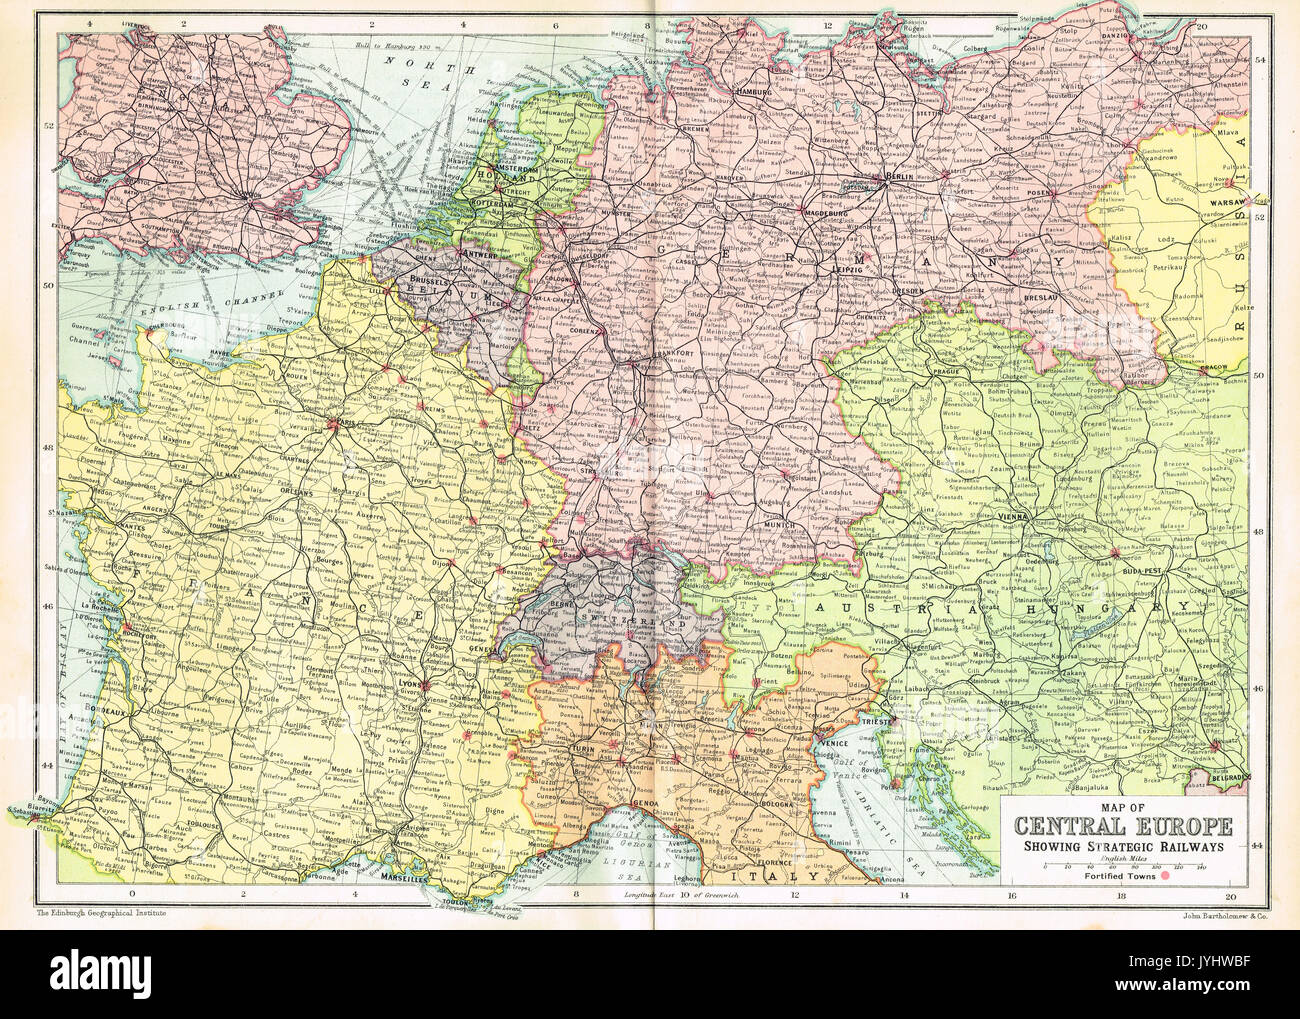 Map Europe World War One Stock Photos & Map Europe World War One ...